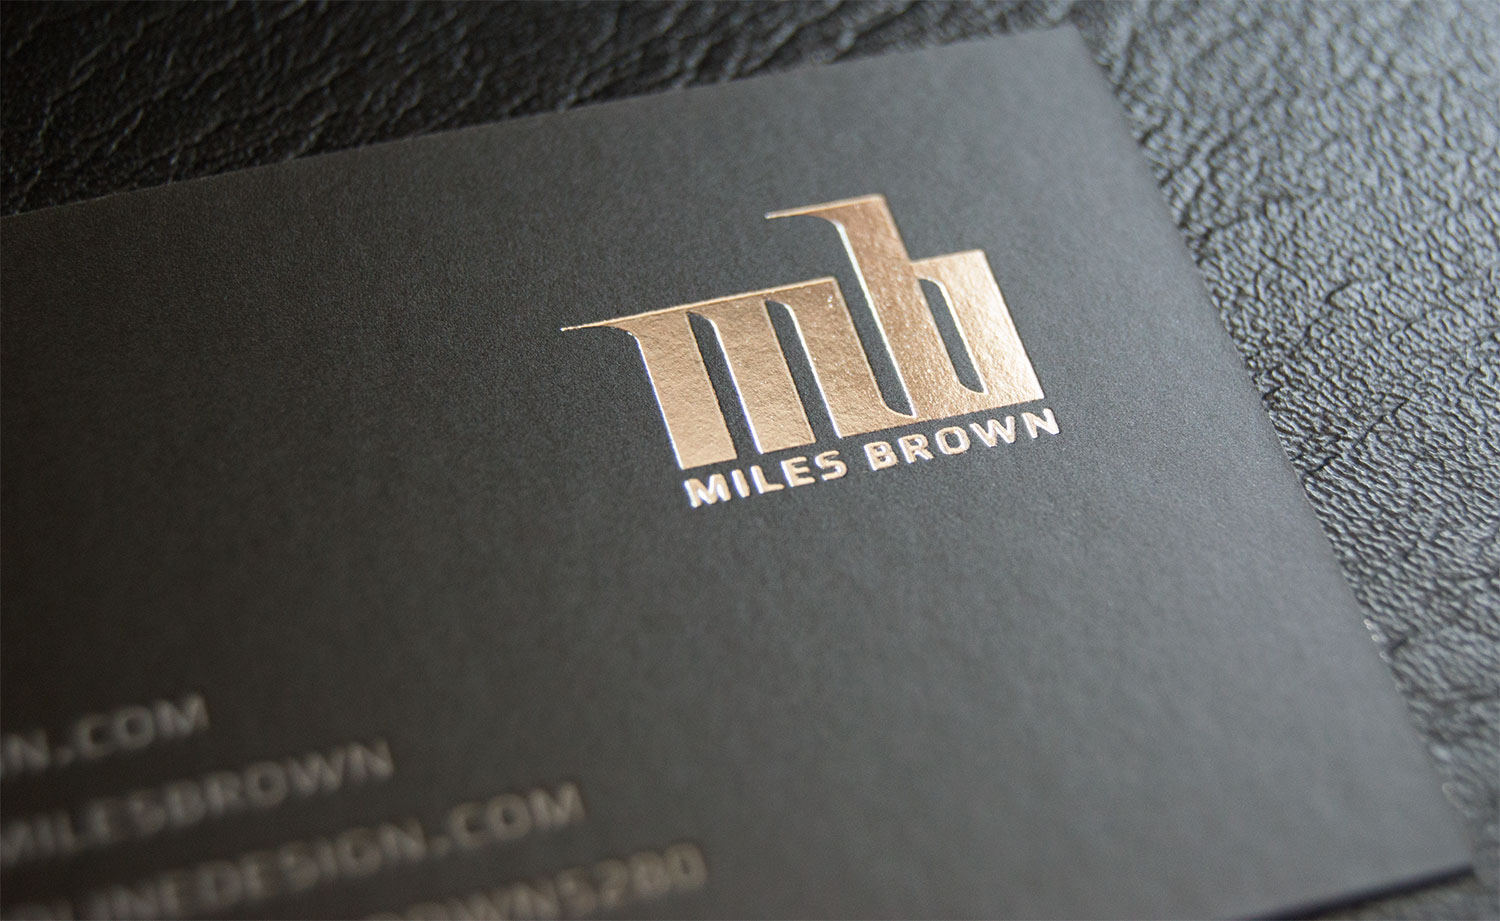 Miles Brown - Personal Business Card